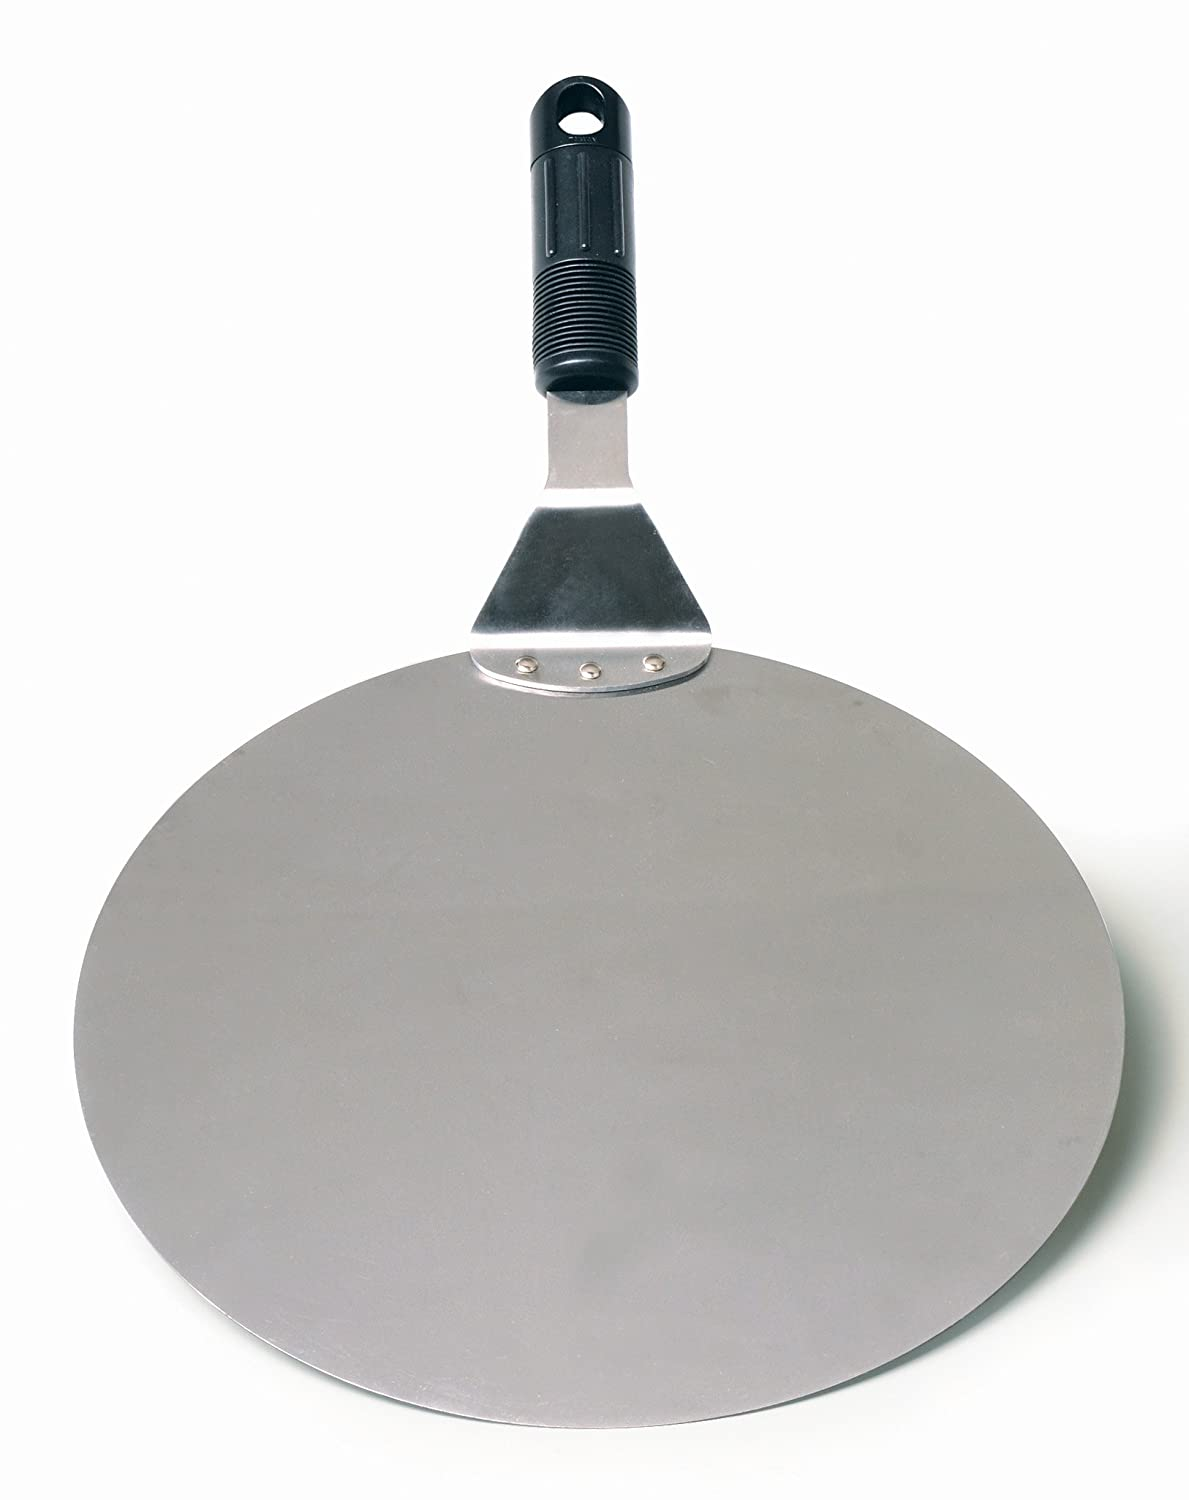 RSVP Endurance Stainless Steel Oven and Pizza Spatula, 10-inch Diameter